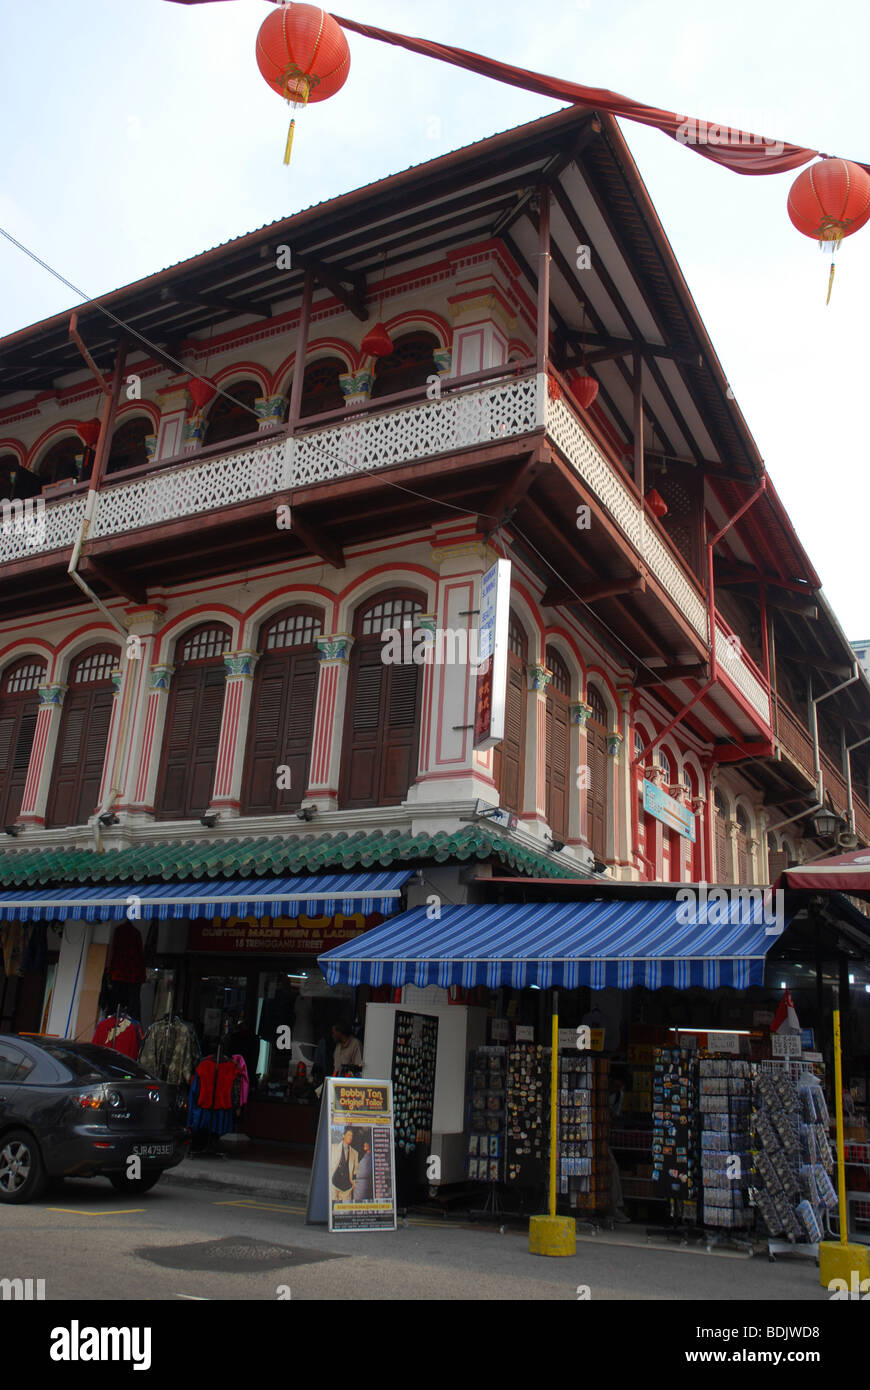 restored building on the corner of Temple Street and Trengannu Street, Chinatown, Singapore - Stock Image